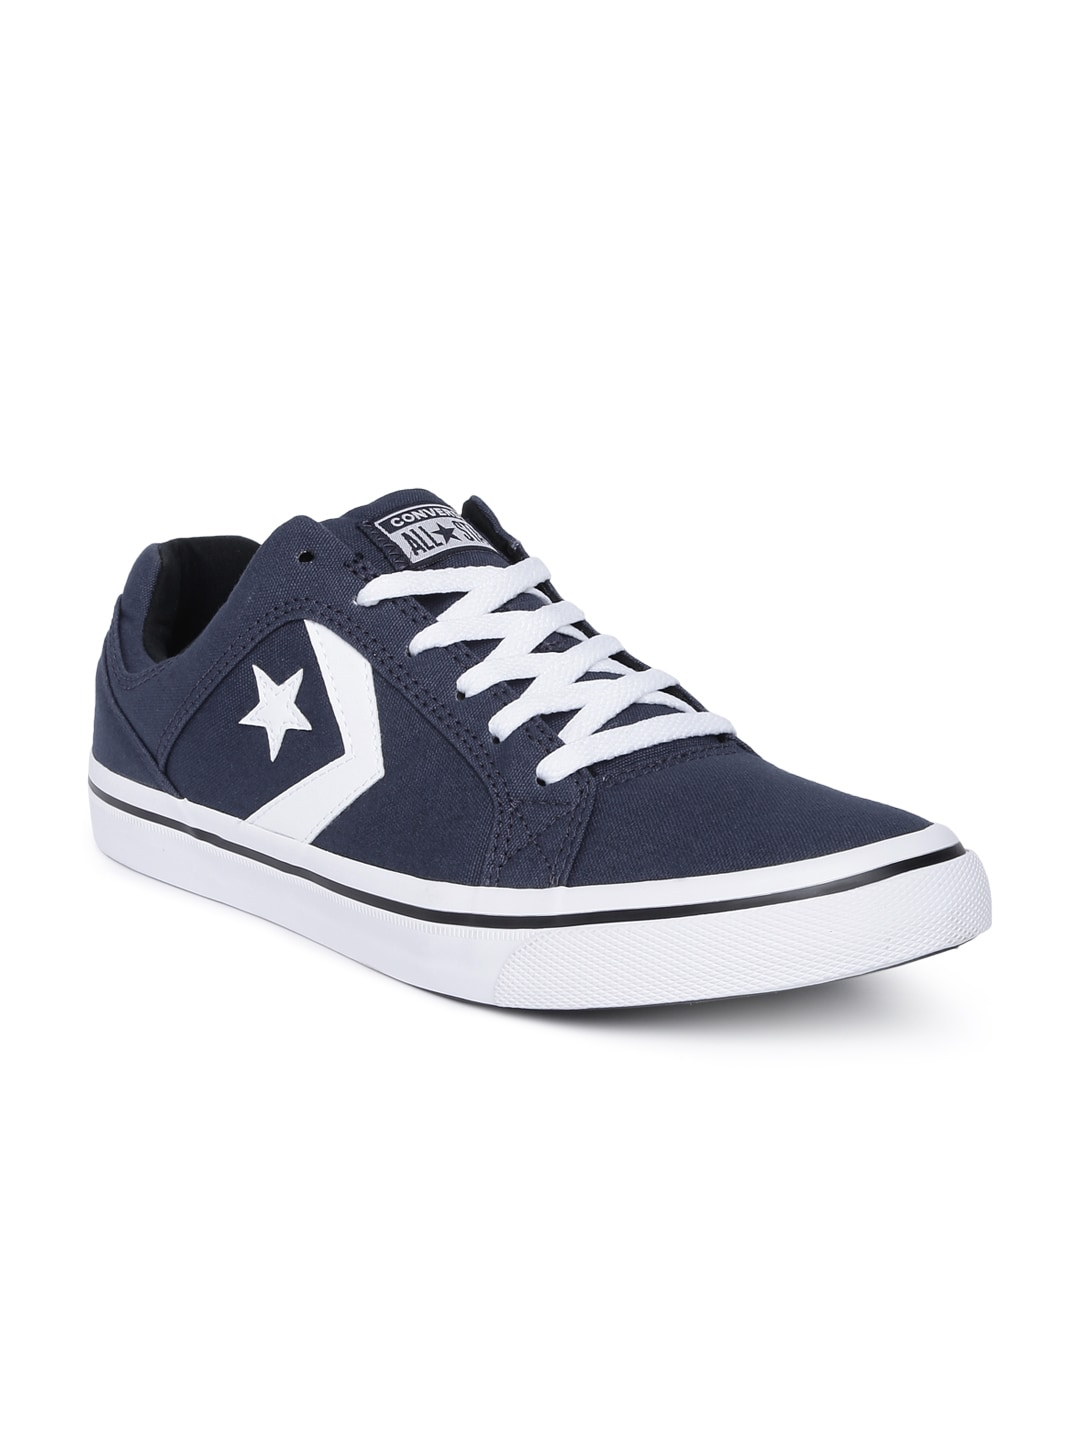 a9018ea3bf075 Converse Men Navy Blue Sneakers